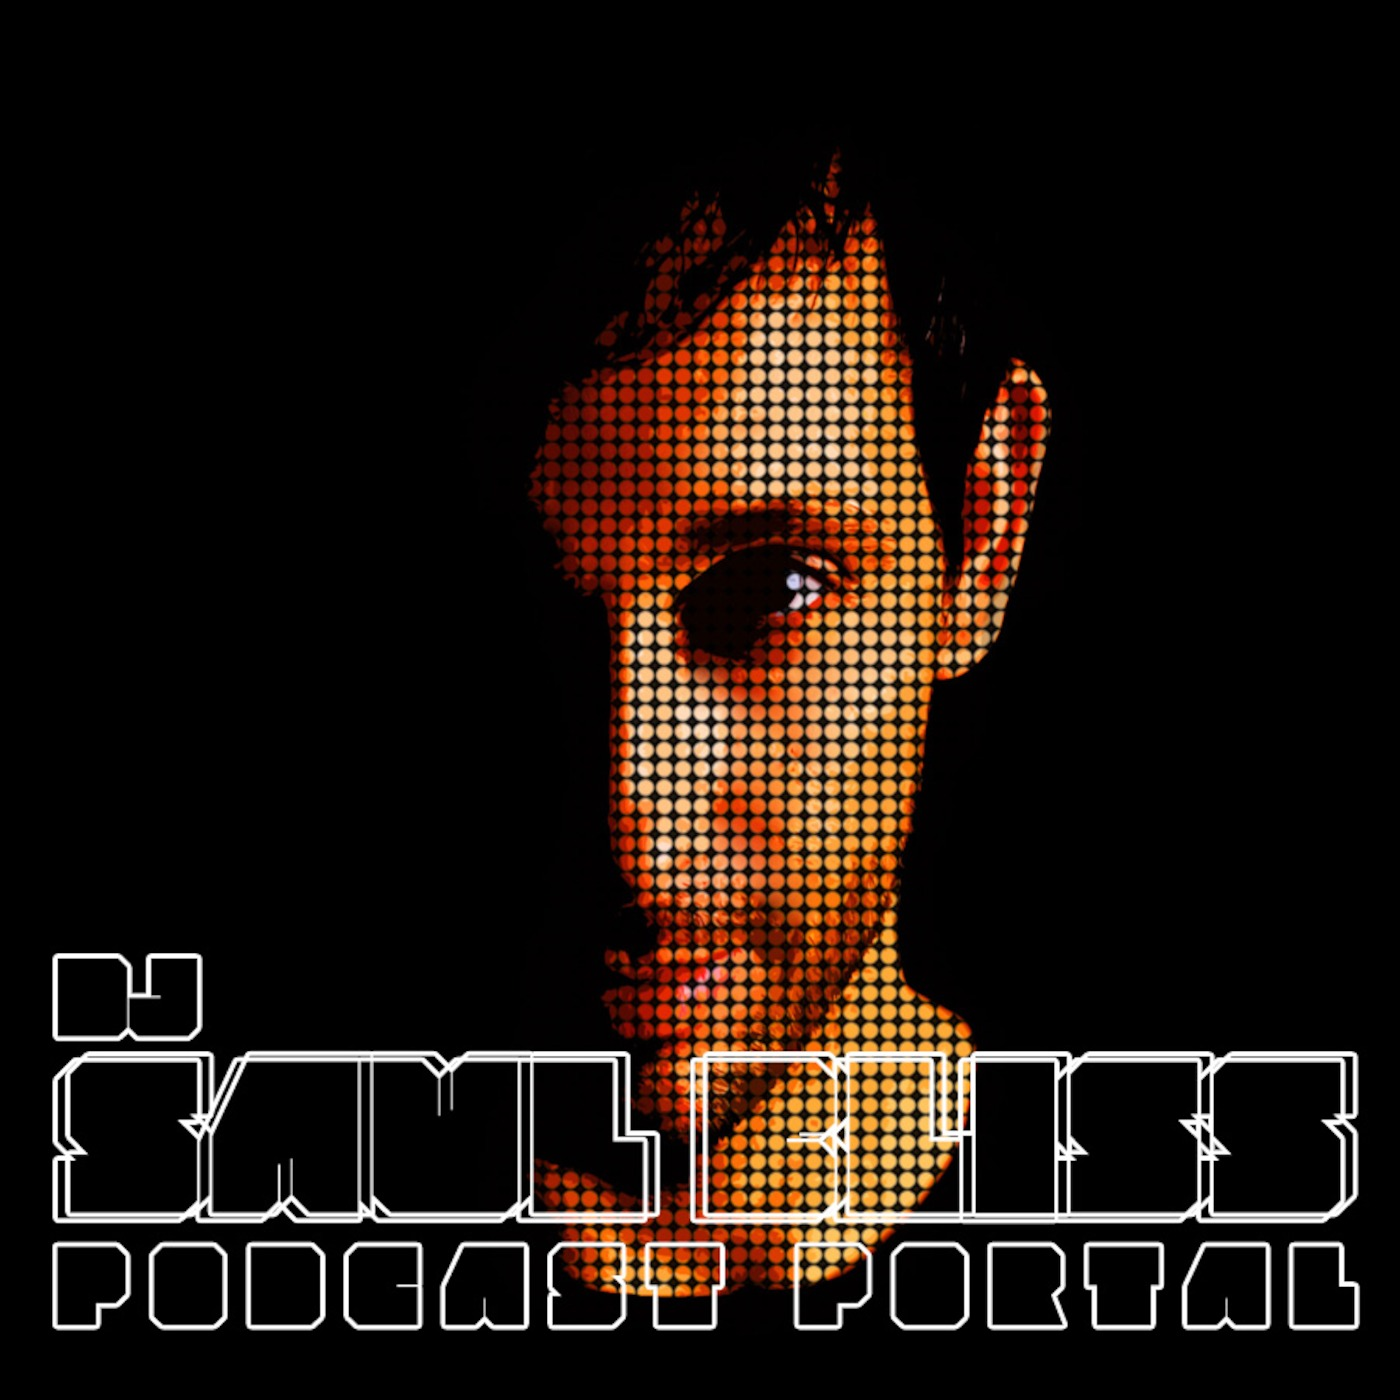 SAUL BLISS PODCAST PORTAL